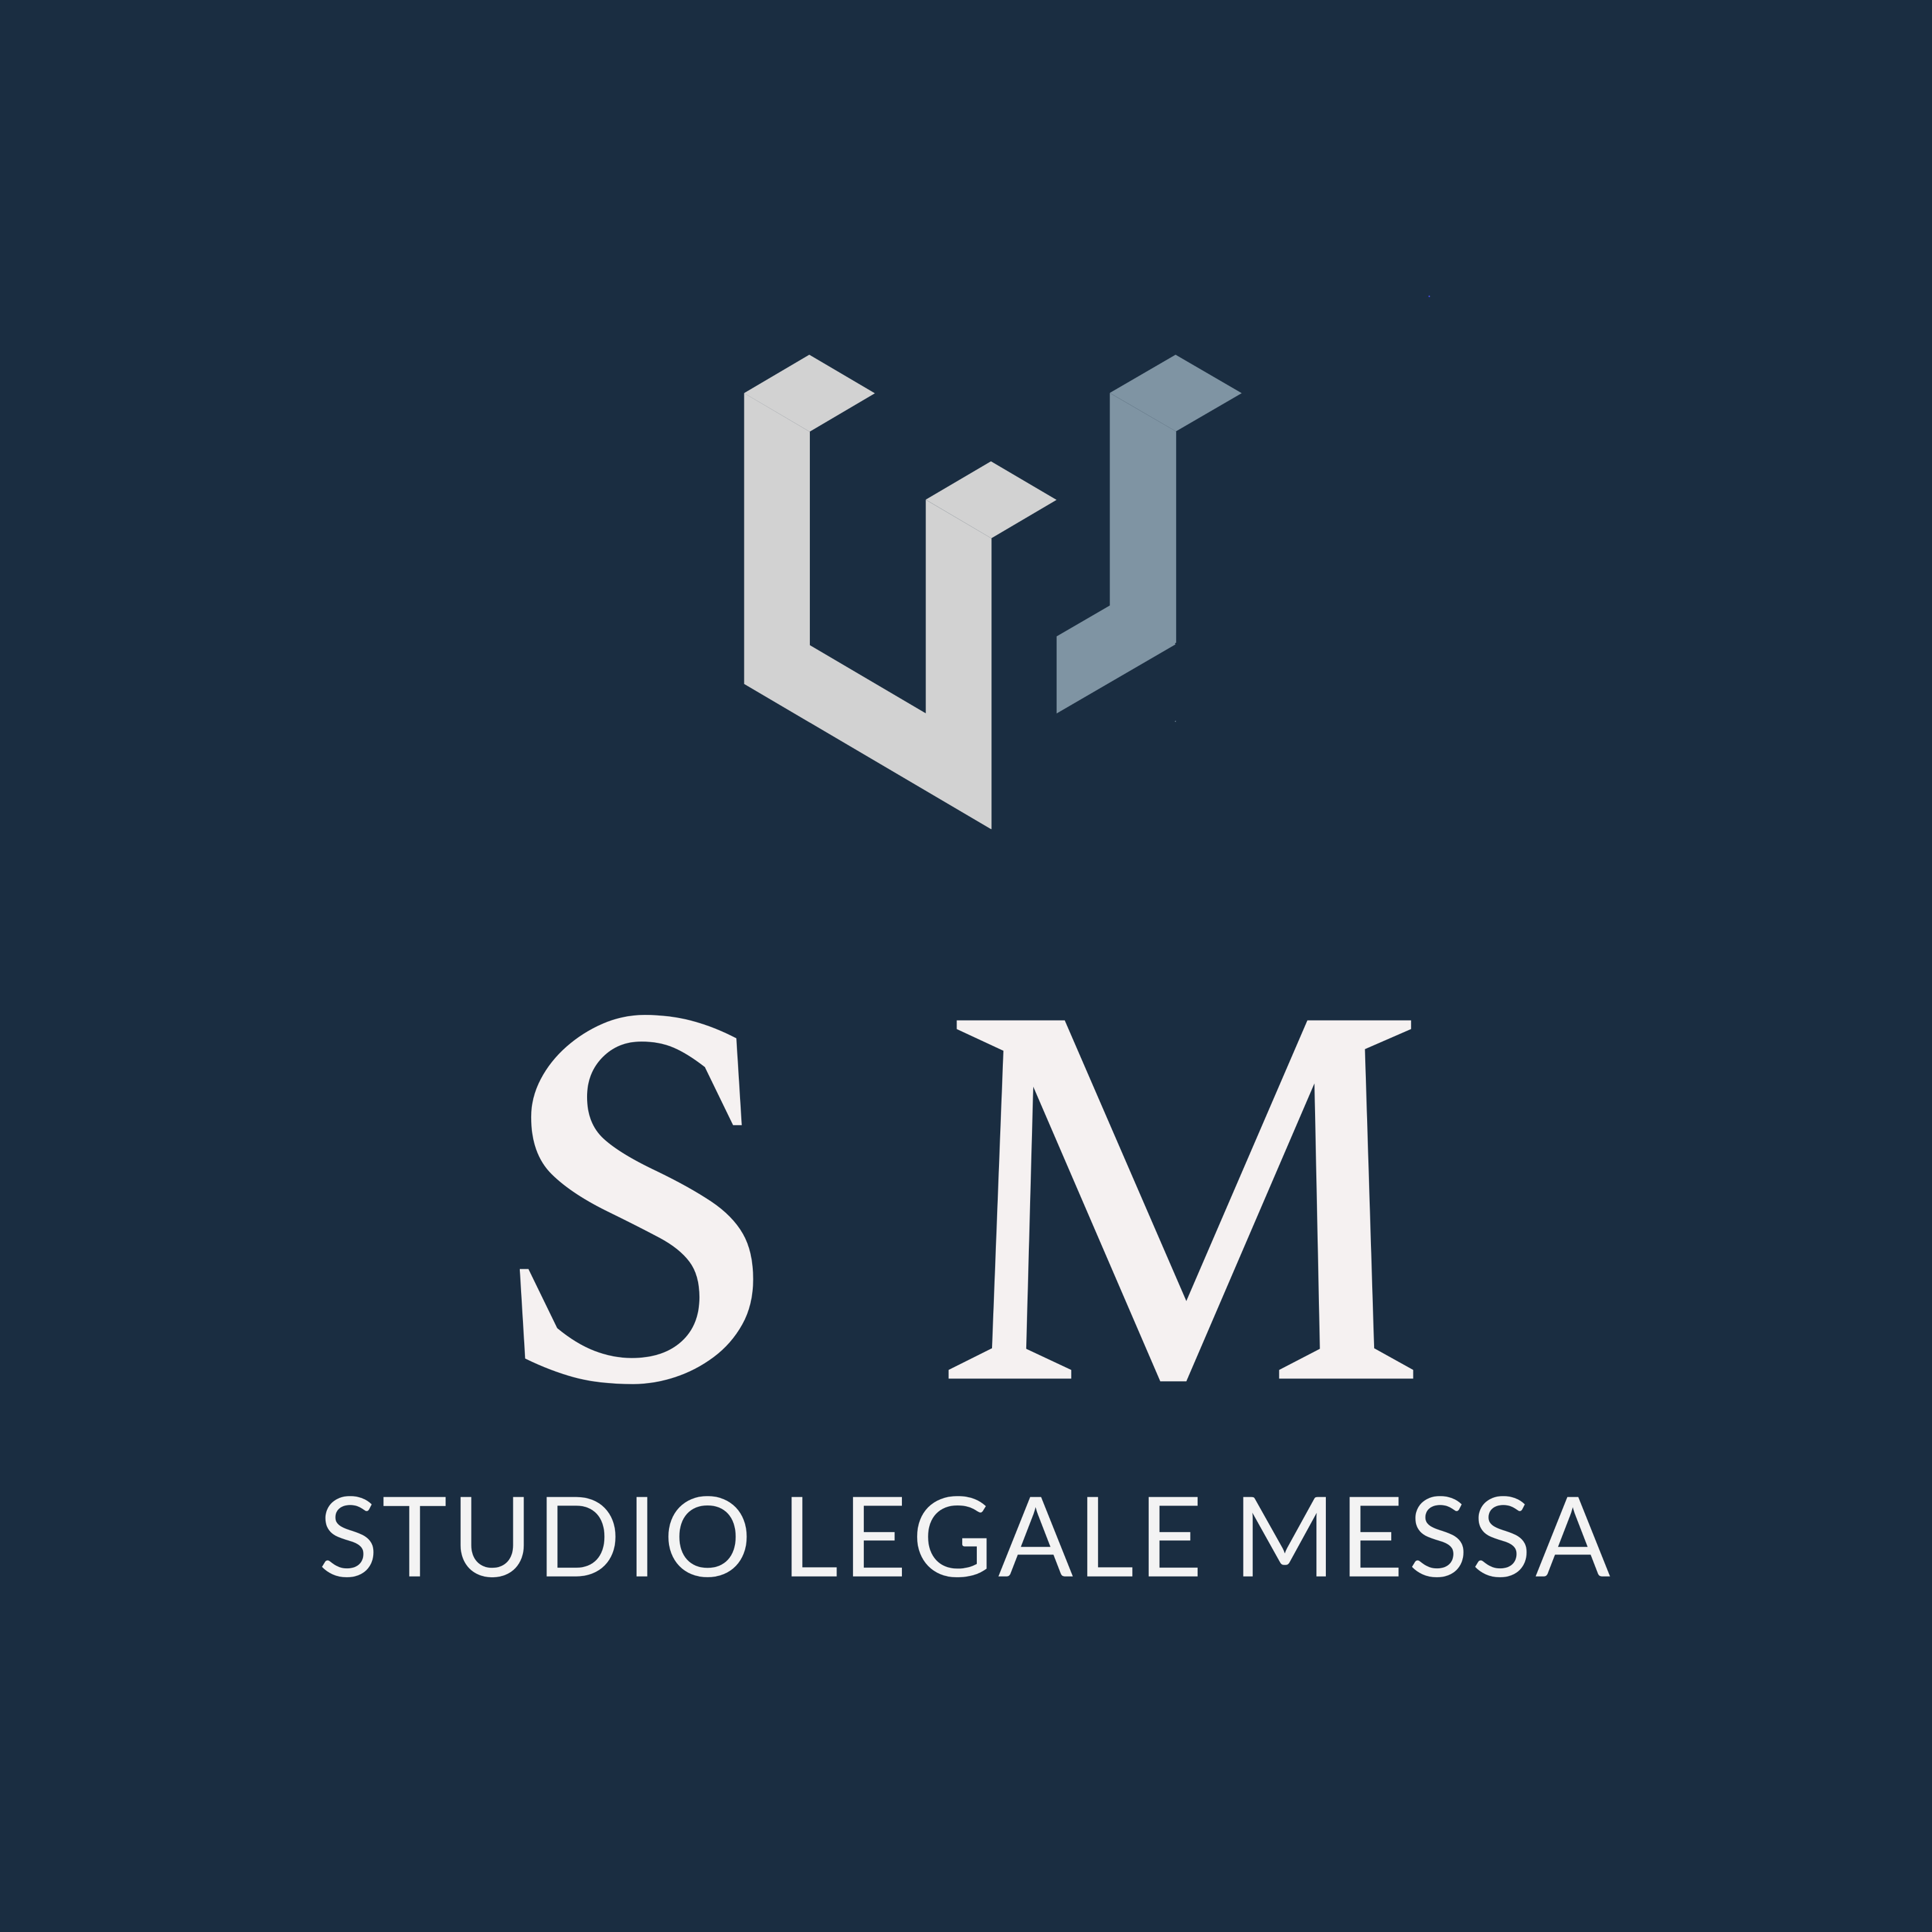 STUDIO LEGALE MESSA